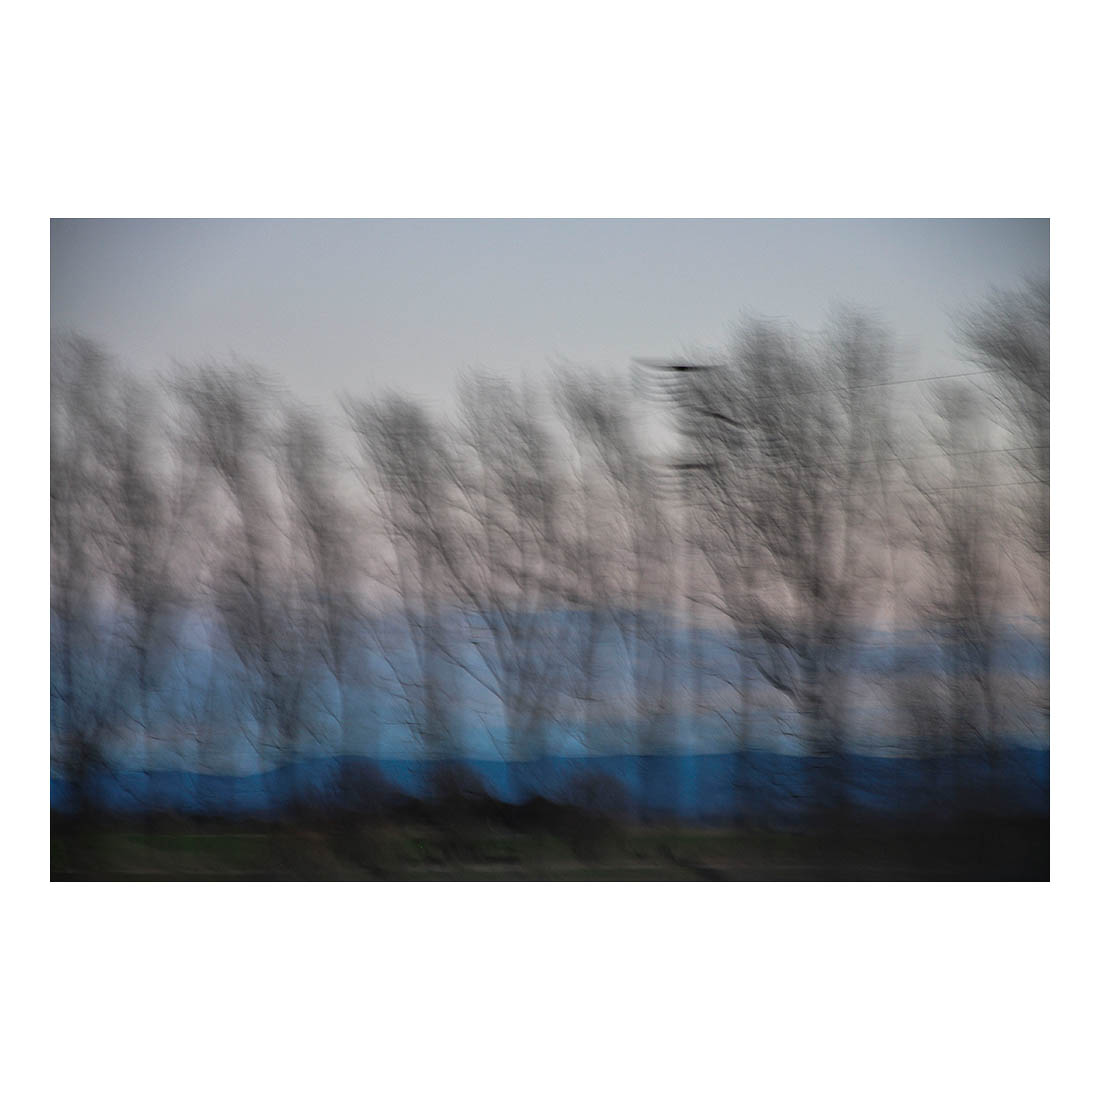 Fleeting View Through Window #02   (2017) Archival pigment print on Japanese Gampi paper. 15cm x 22.5cm (image) 35cm x 28cm (paper) Ed. of 10